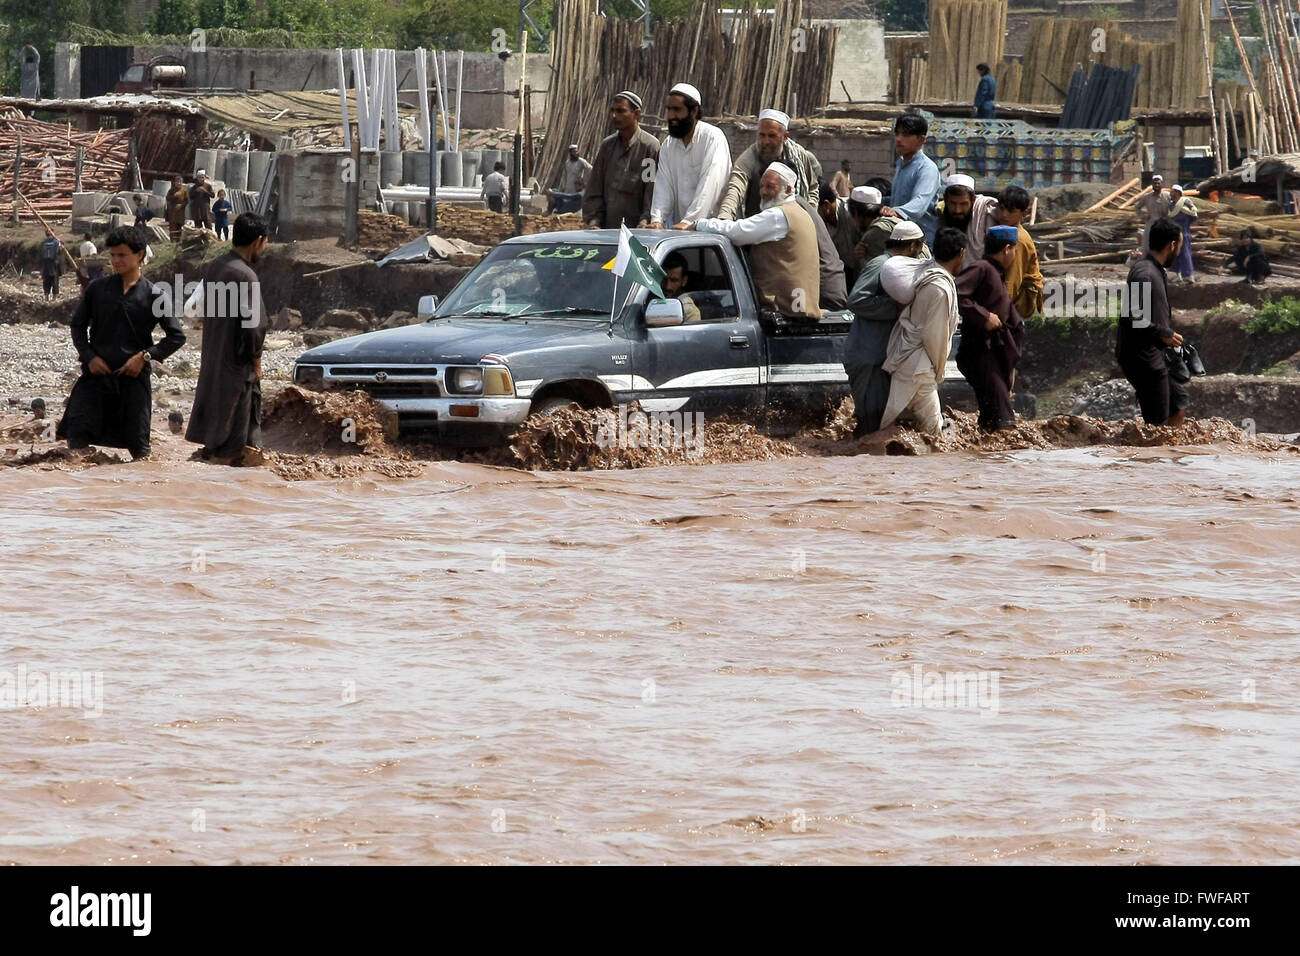 (160404) -- PESHAWAR, April 4, 2016(Xinhua) -- A vehicle moves through a flooded street following heavy rain on - Stock Image